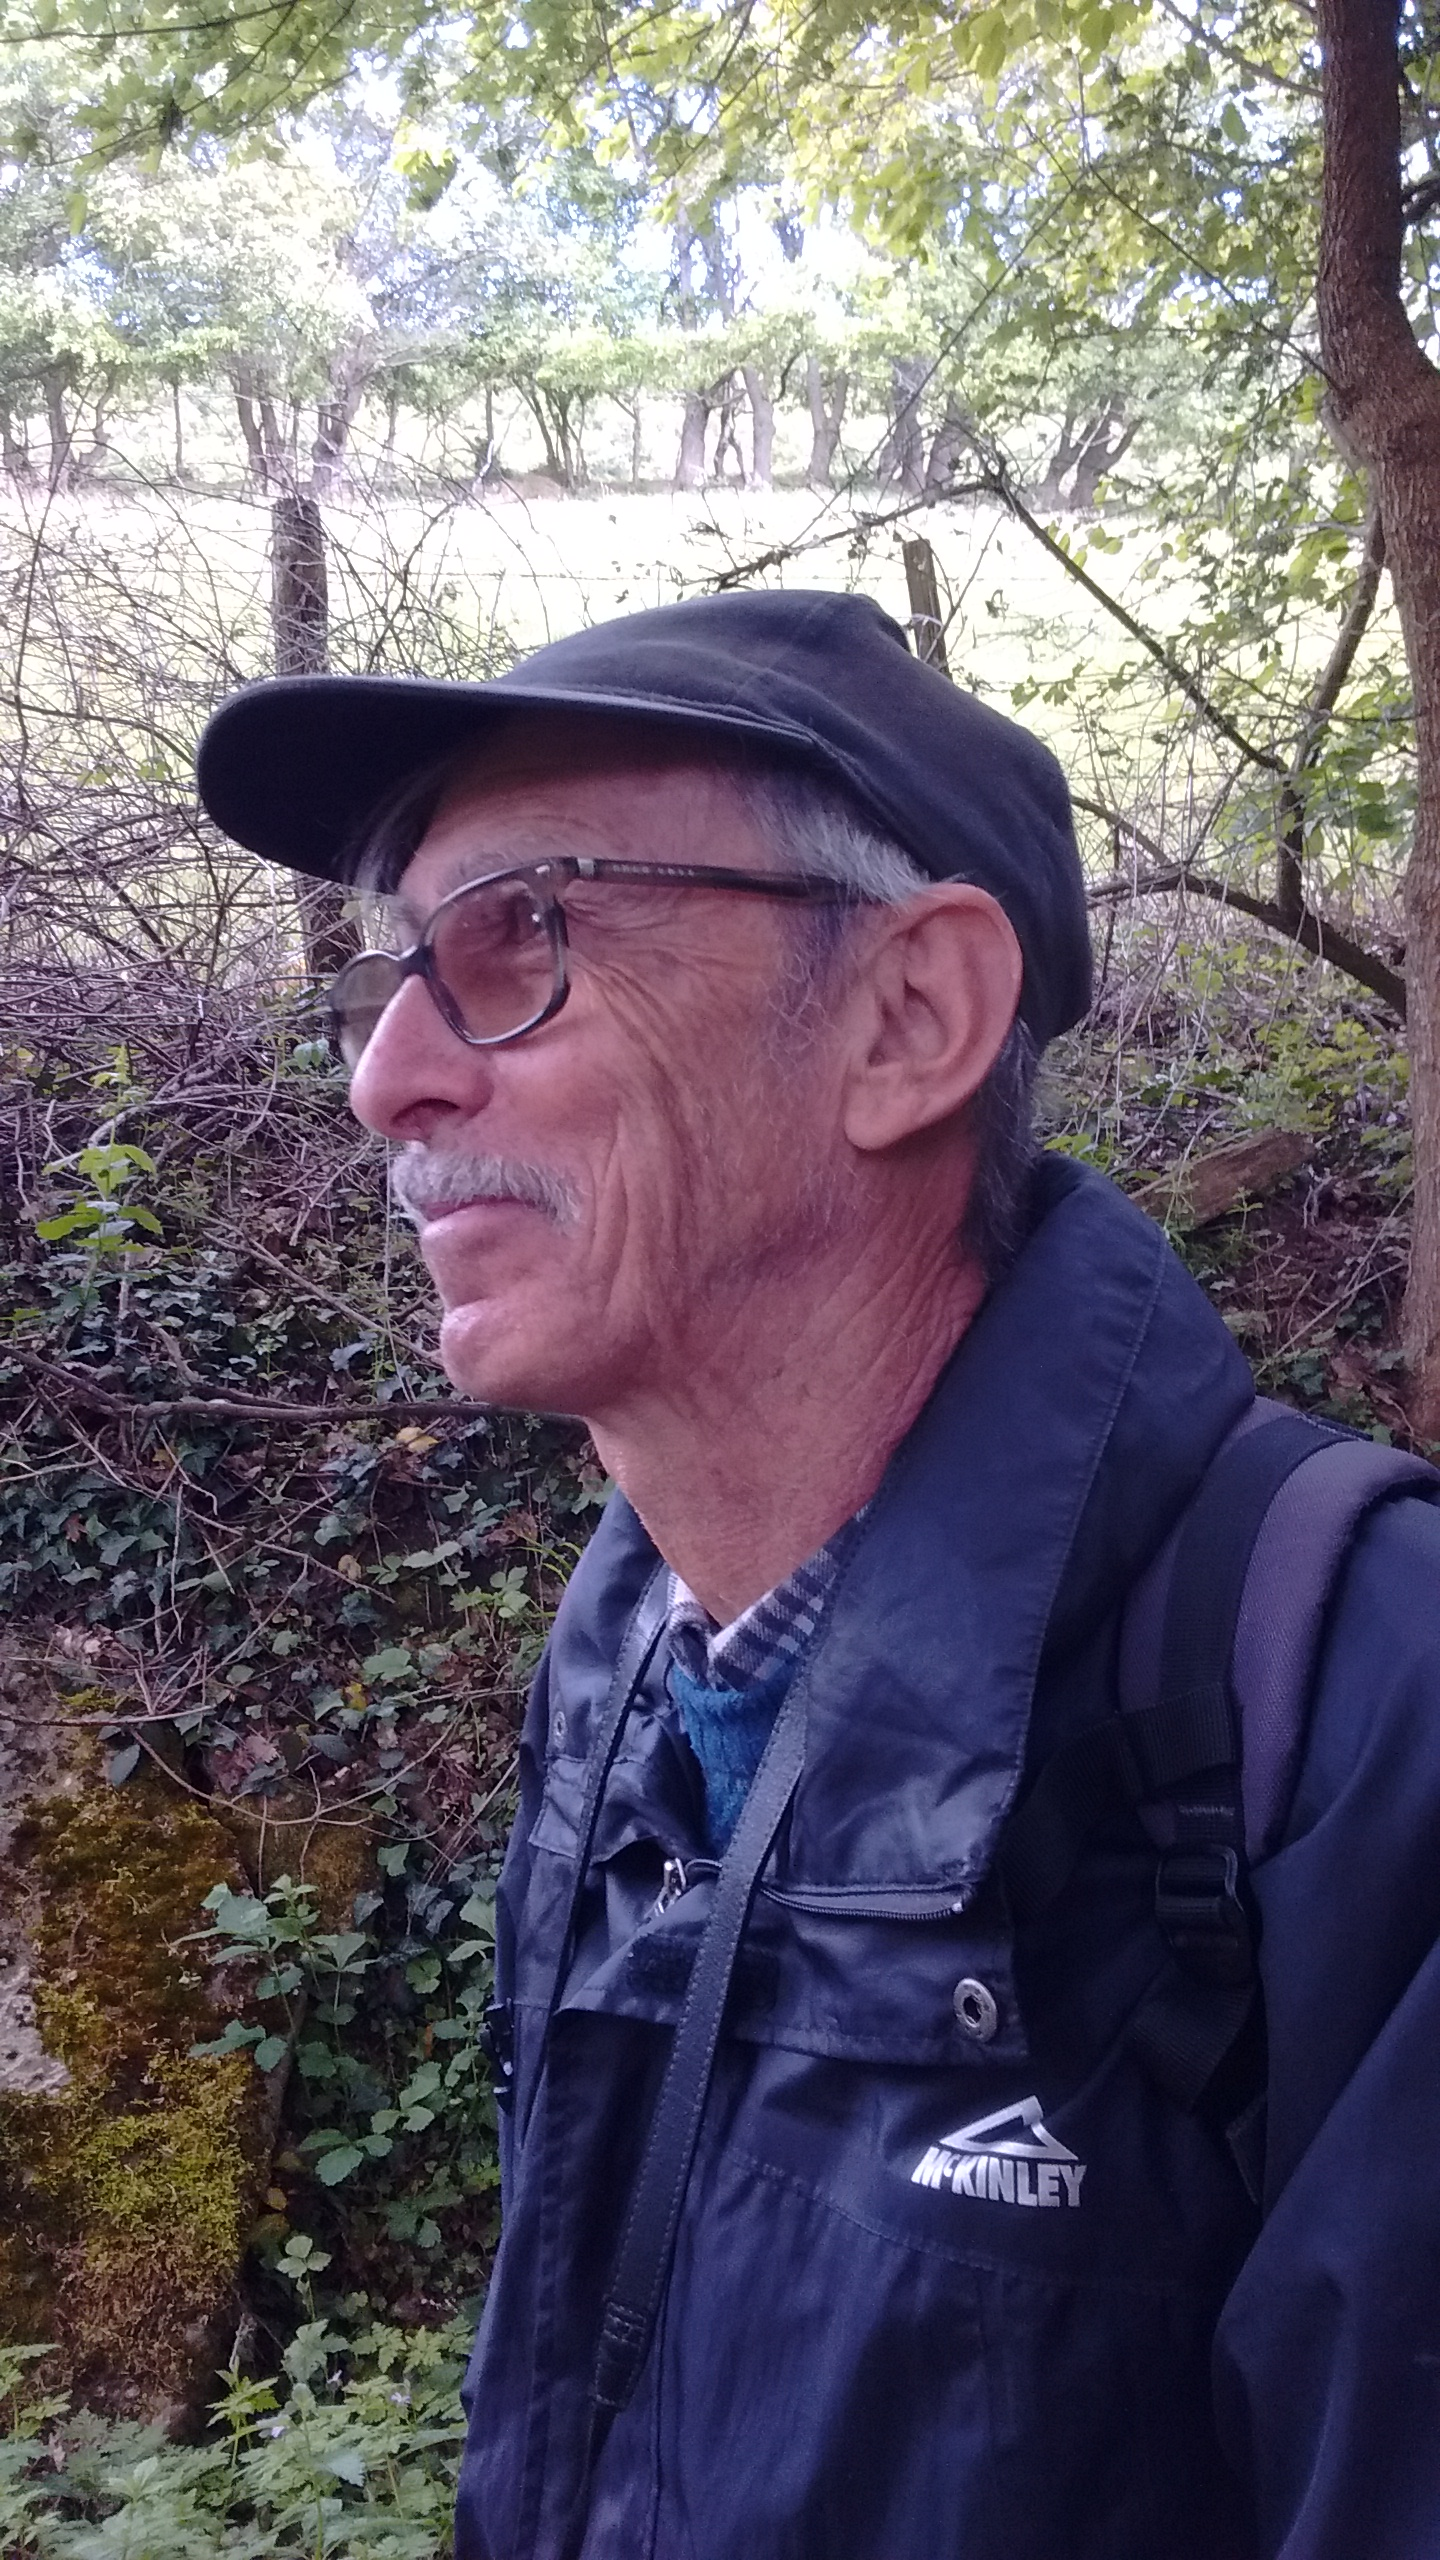 Image of André Morel: http://semantic-forms.cc:1952/ldp/1523192820600-38873767389473962